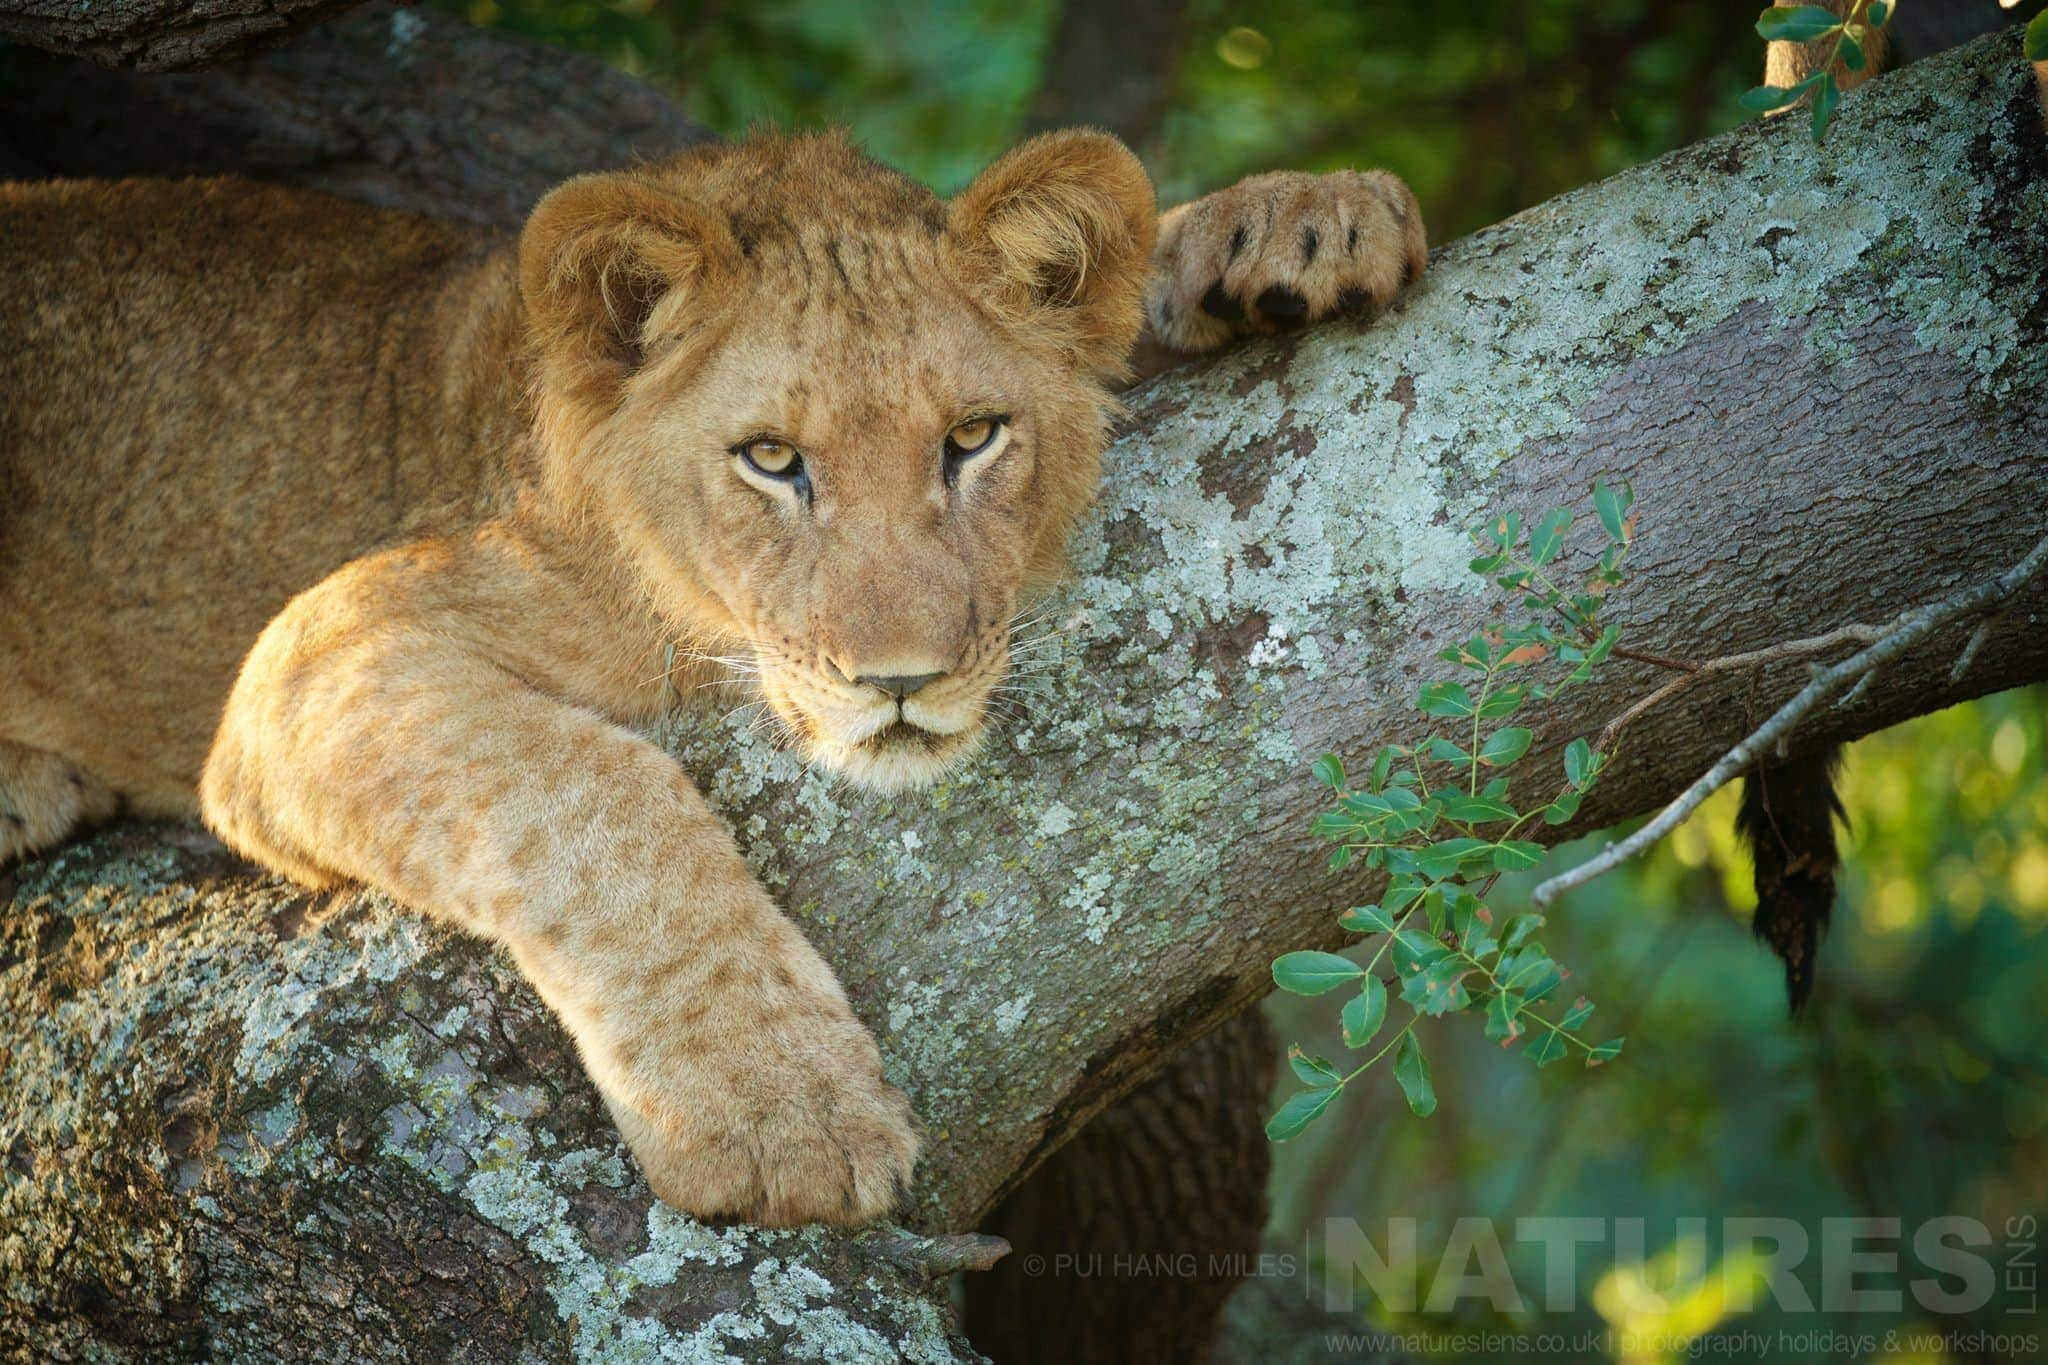 Watchful Lion Cub Resting In A Tree   Captured During The Natureslens African Wildlife Zimanga Photography Holiday